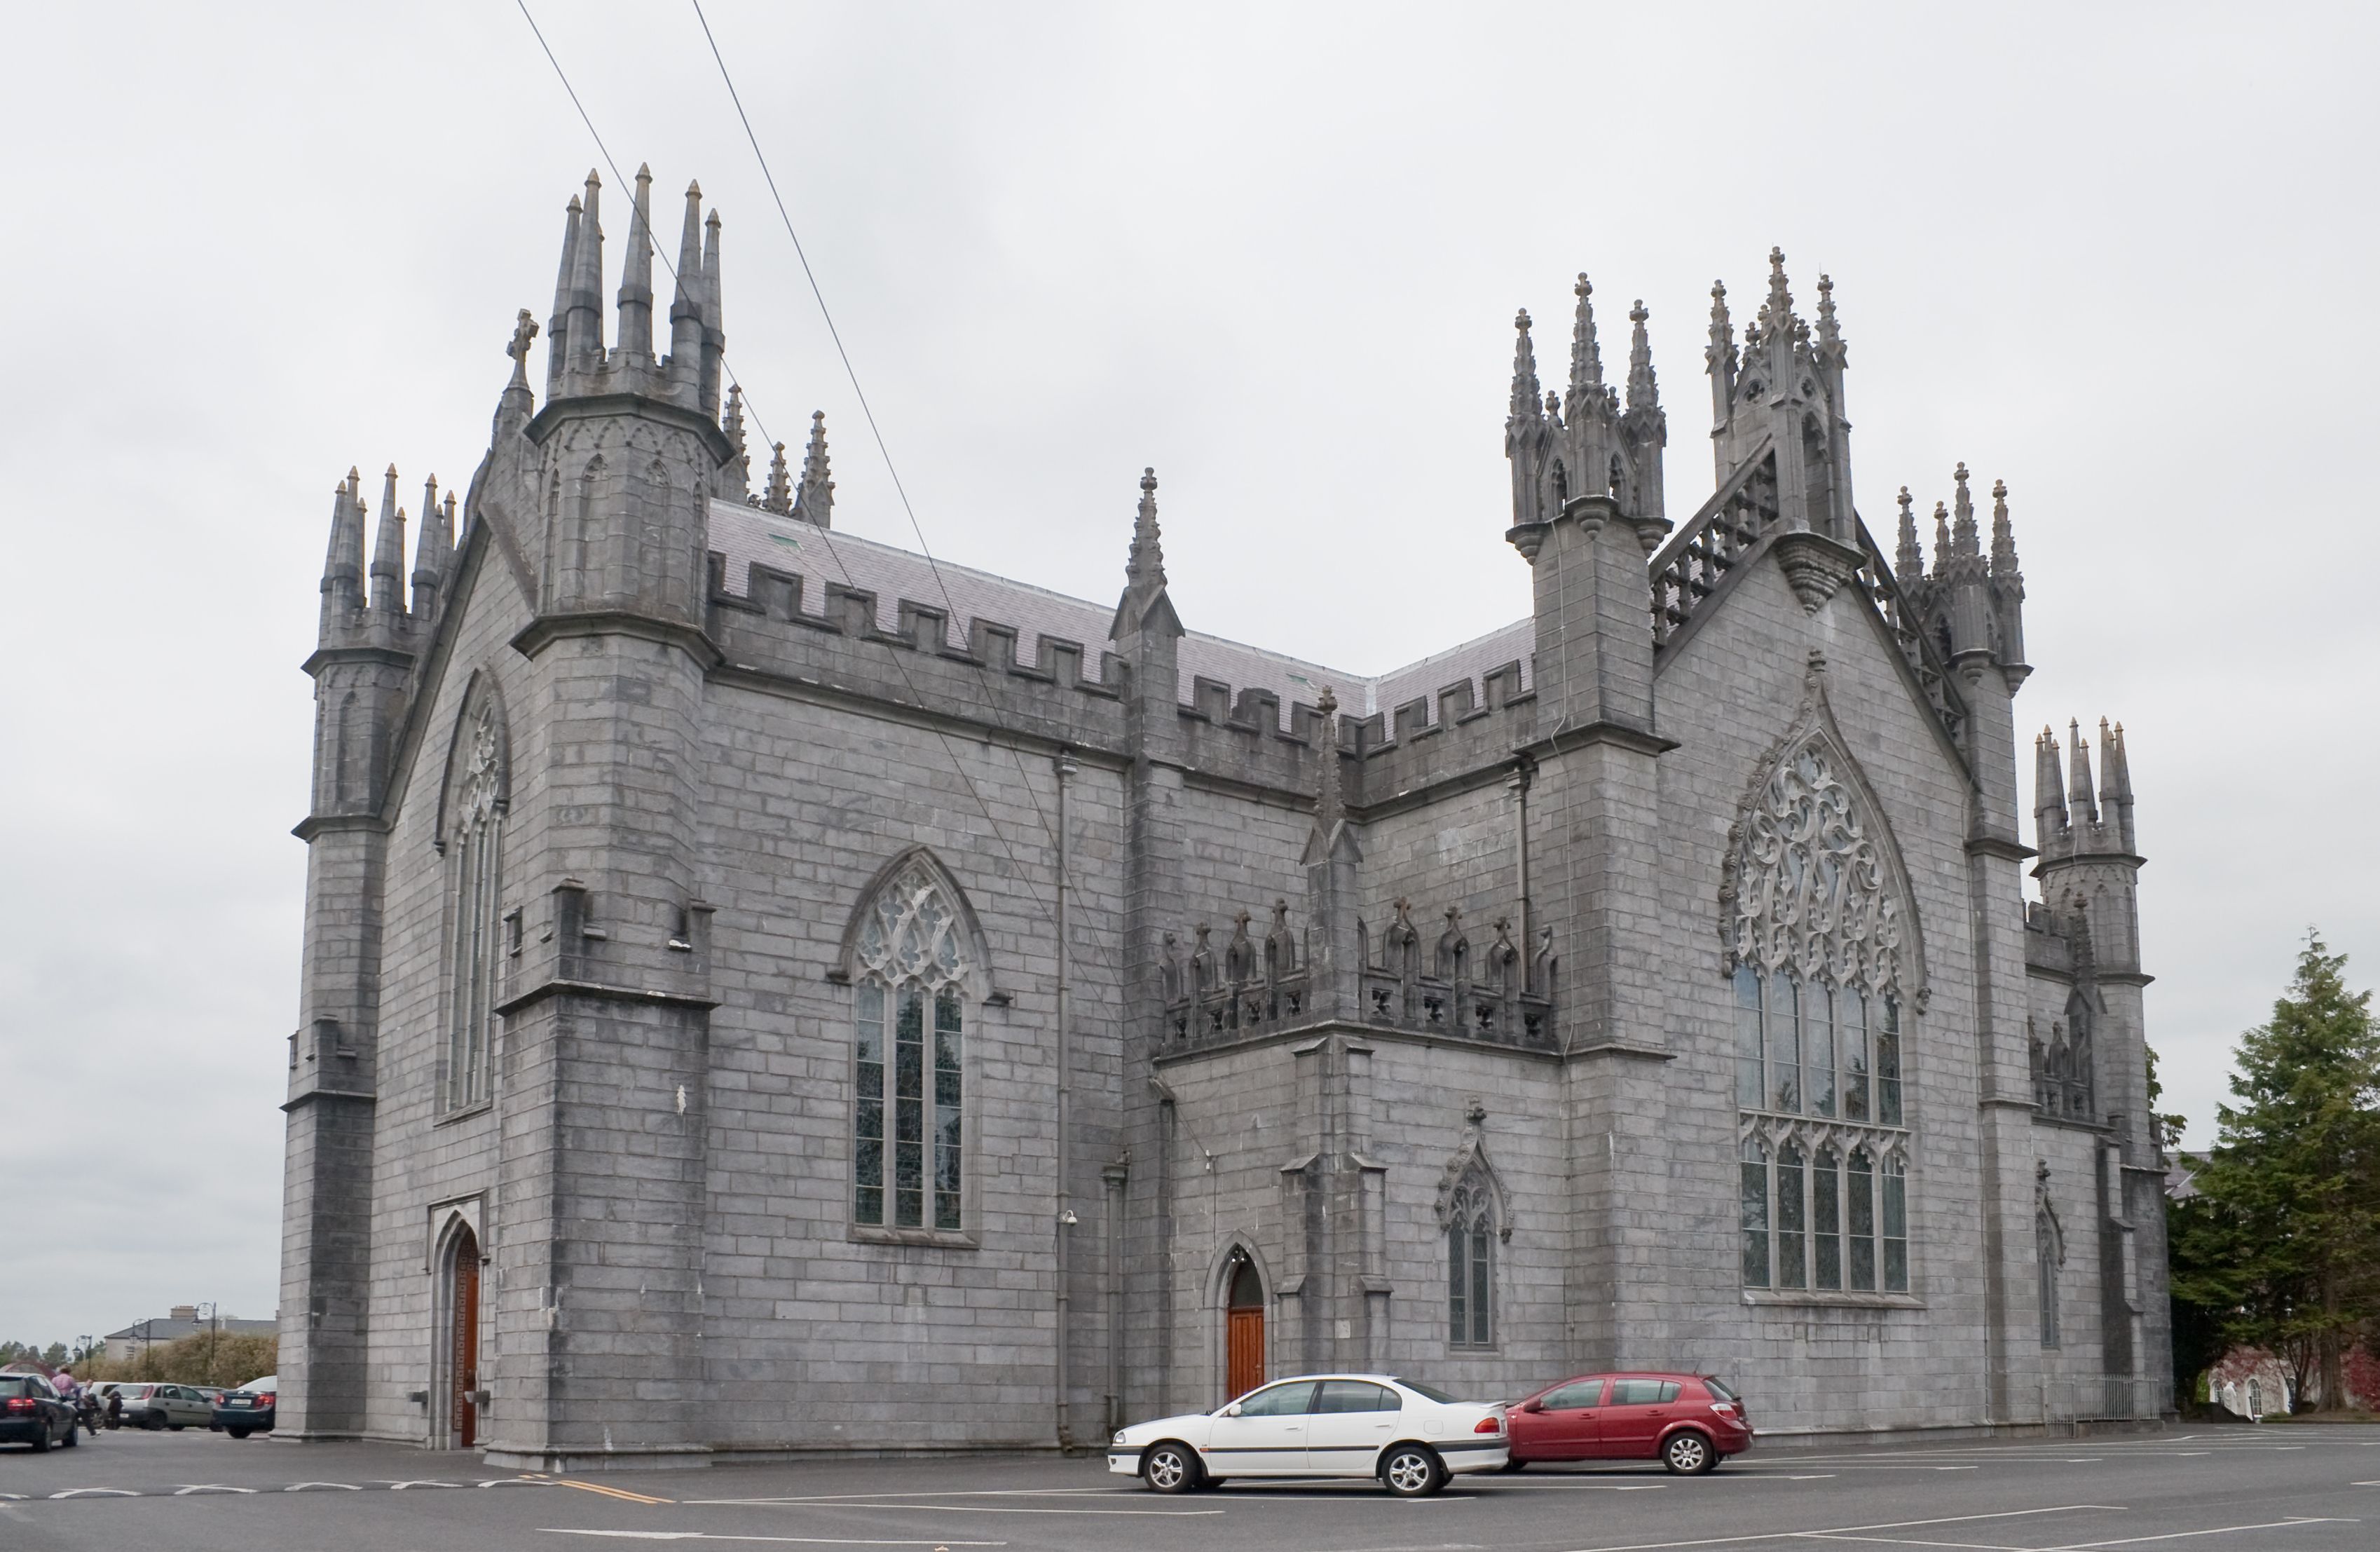 TUAM TOWN TRAFFIC LIGHTS TO BE WORKING BY NEXT